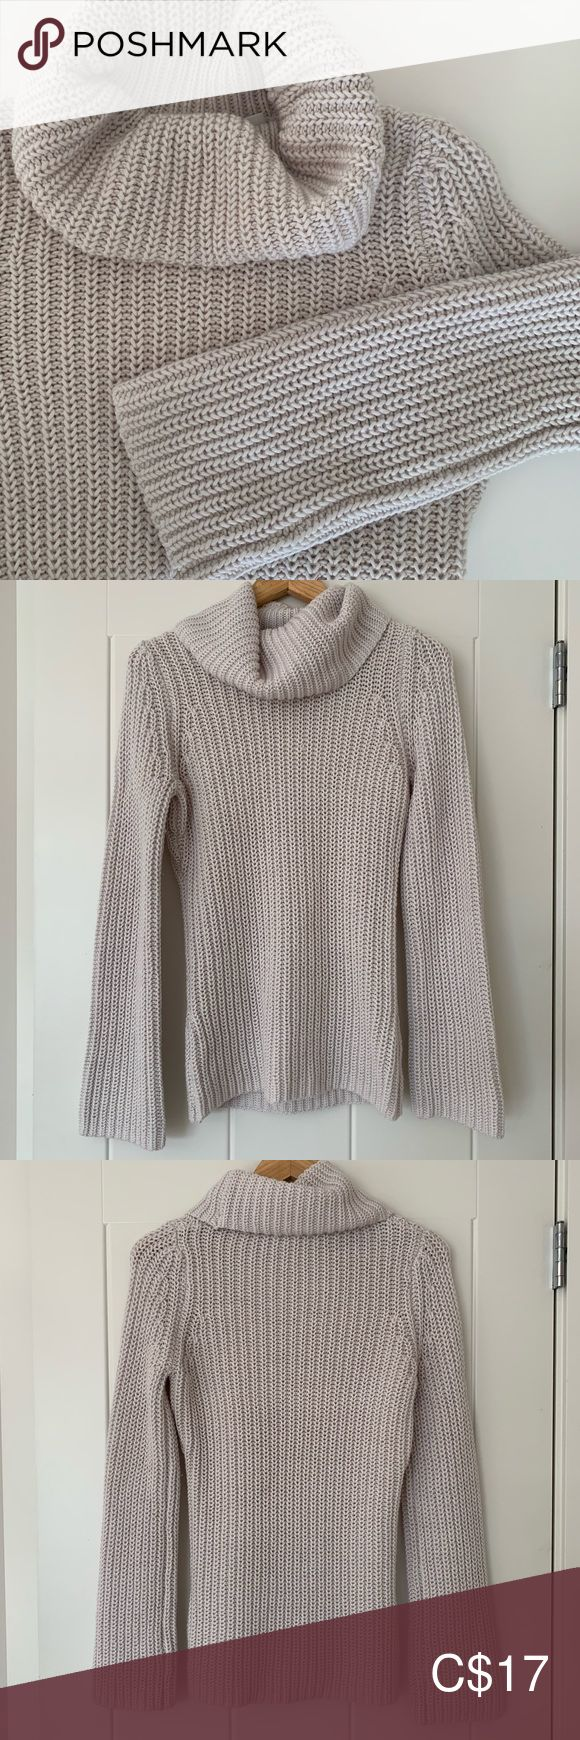 Esprit Cowl Neck Sweater